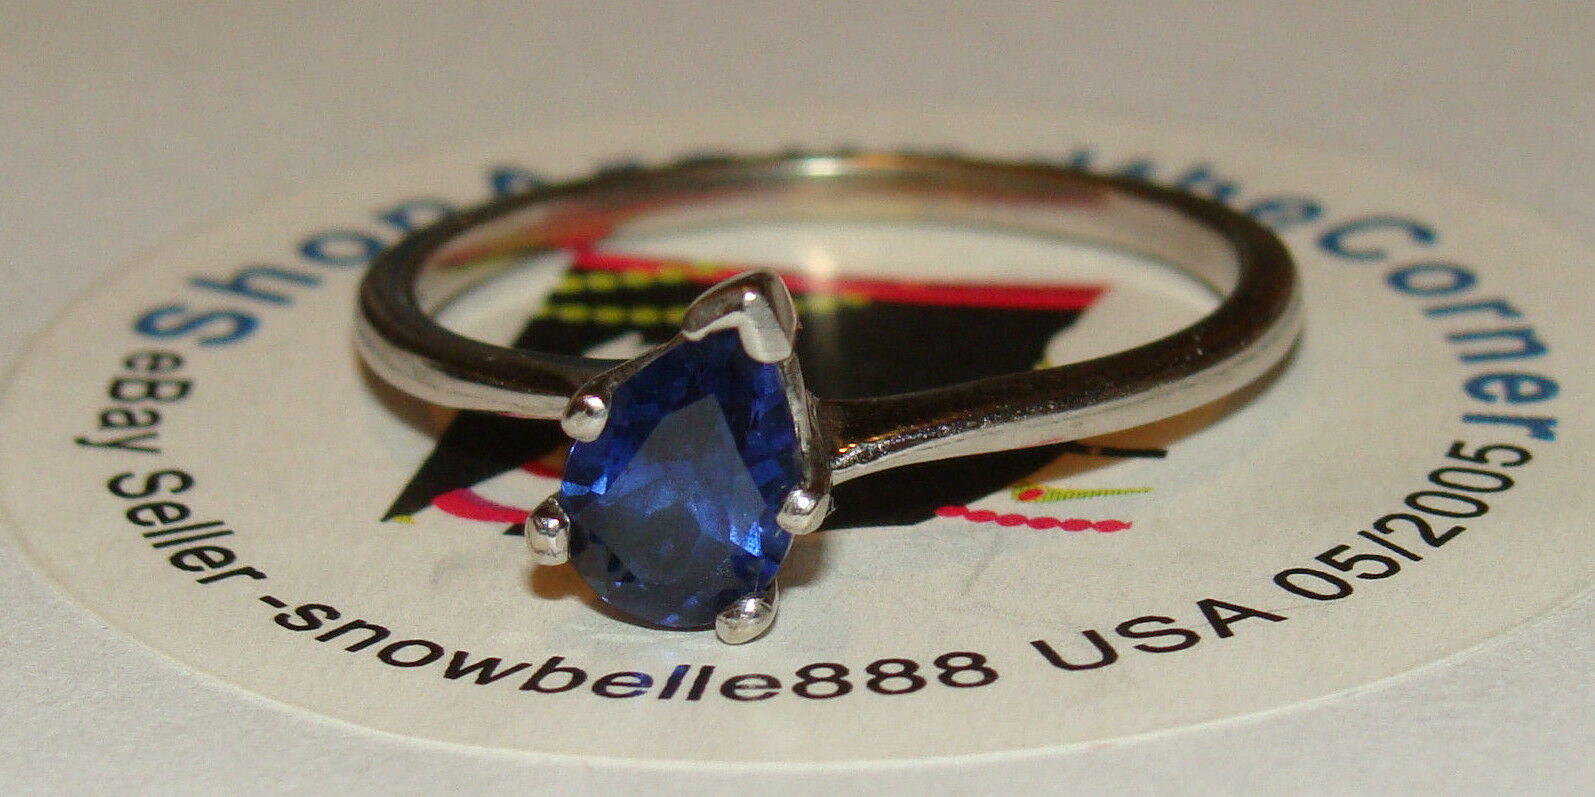 14K SOLID Wgold .75CTS NATURAL Pear Cut bluee Sapphire Solitaire Ring 2.3Gms Sze8